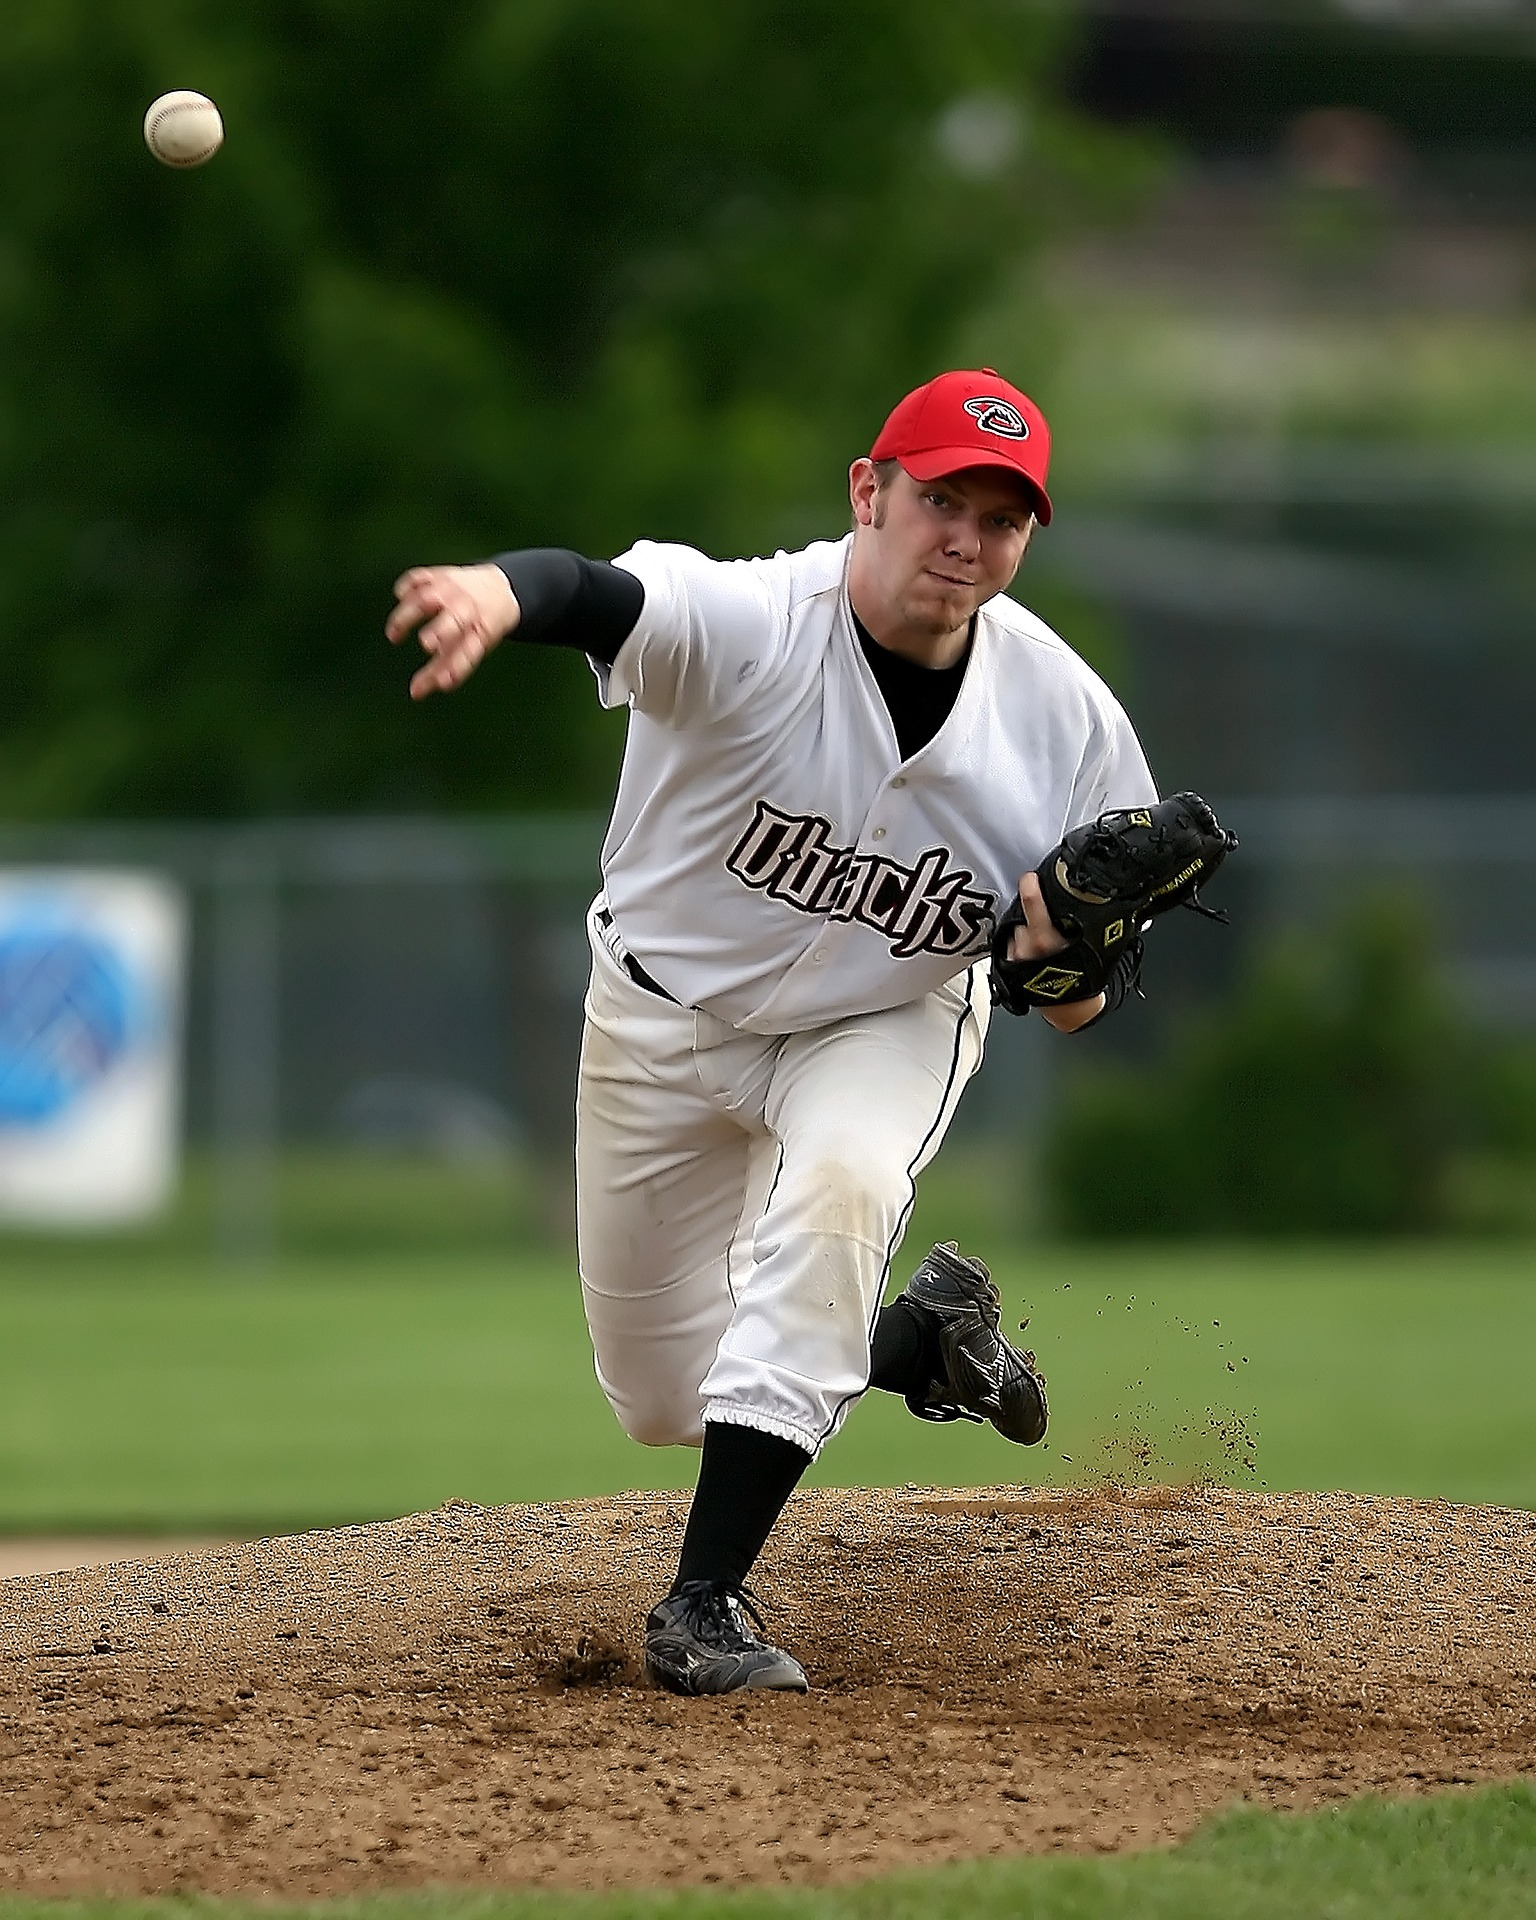 Does Stride Affect Pitching Velocity?